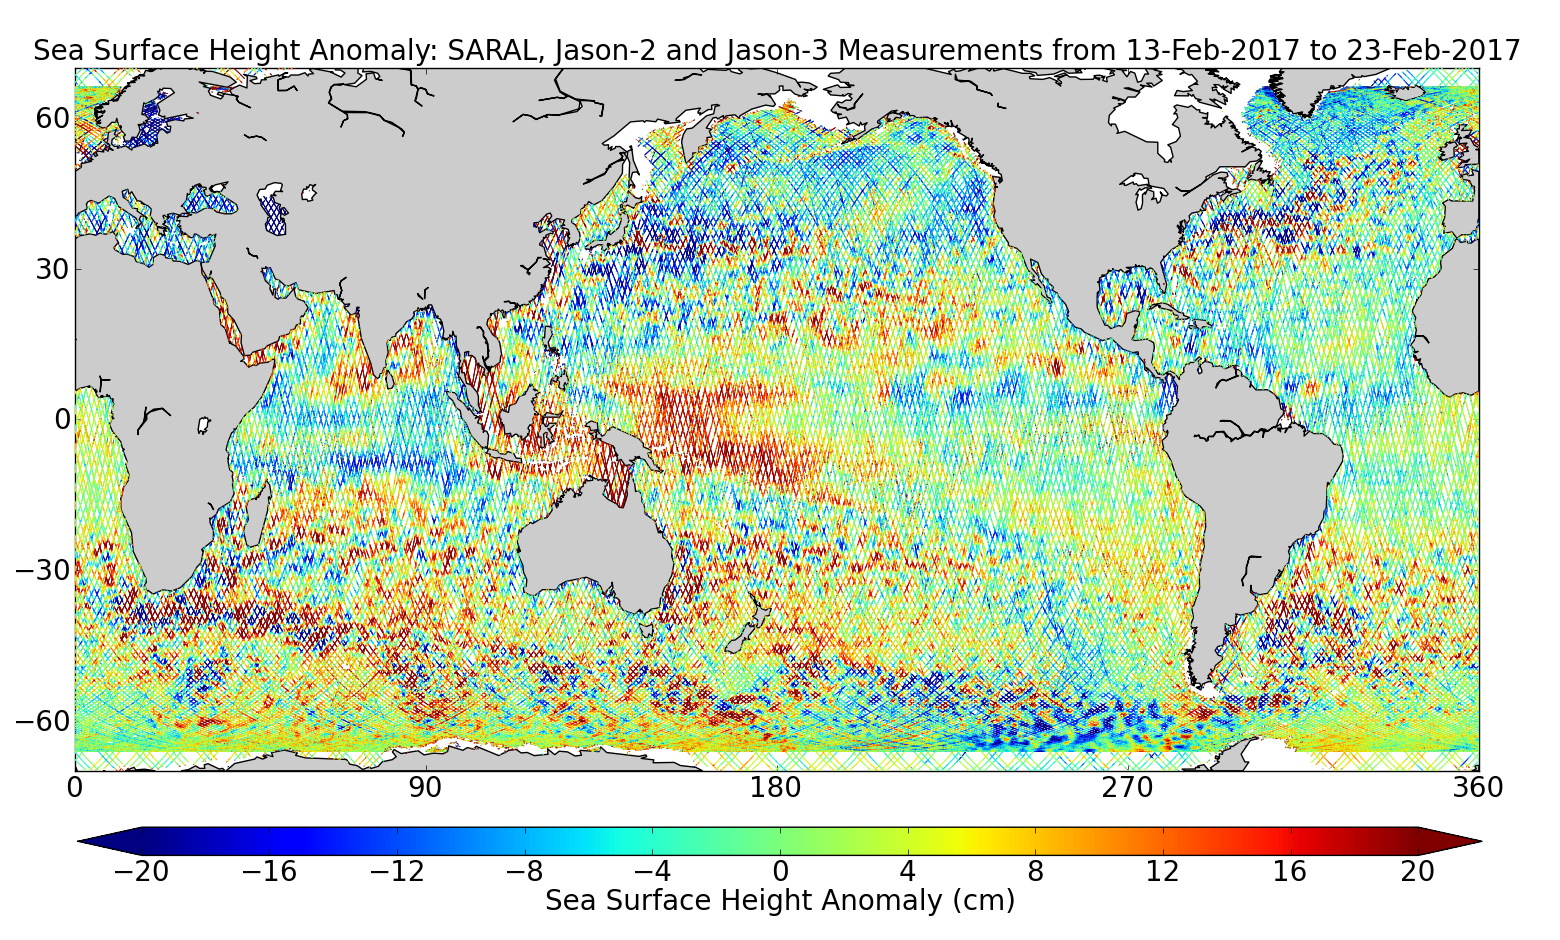 Sea Surface Height Anomaly: SARAL, Jason-2 and Jason-3 Measurements from 13-Feb-2017 to 23-Feb-2017